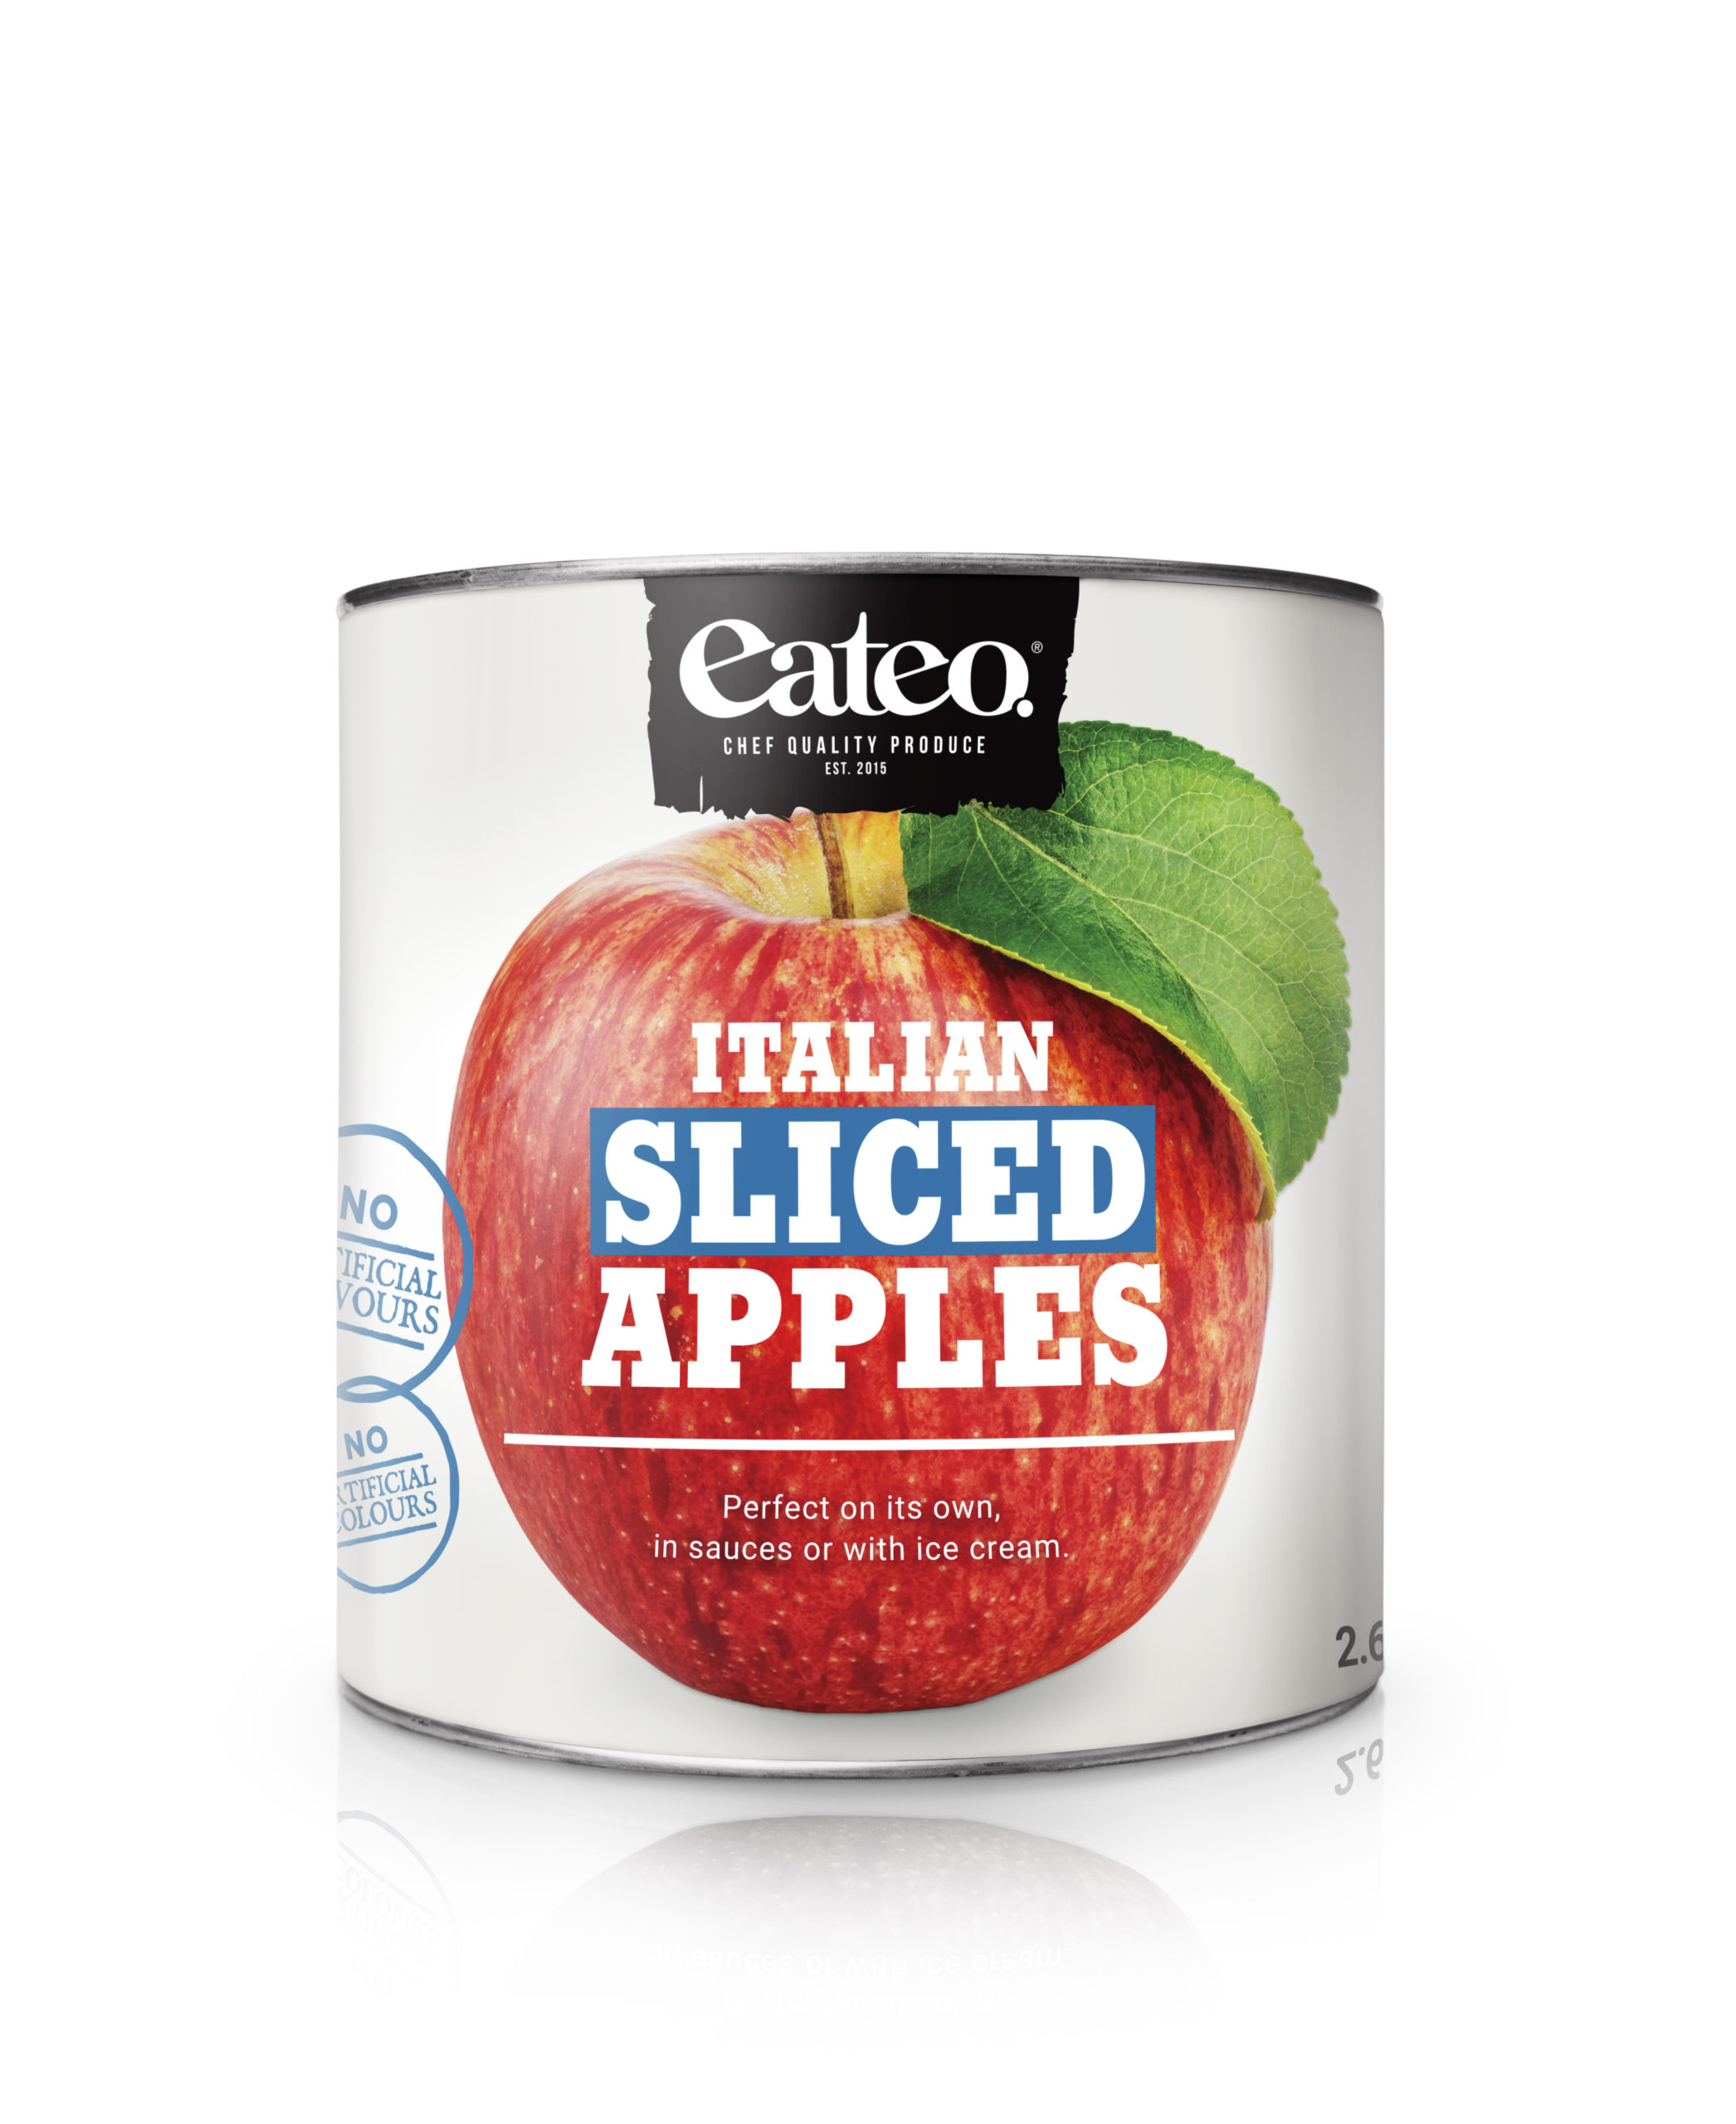 Italian Sliced Apples